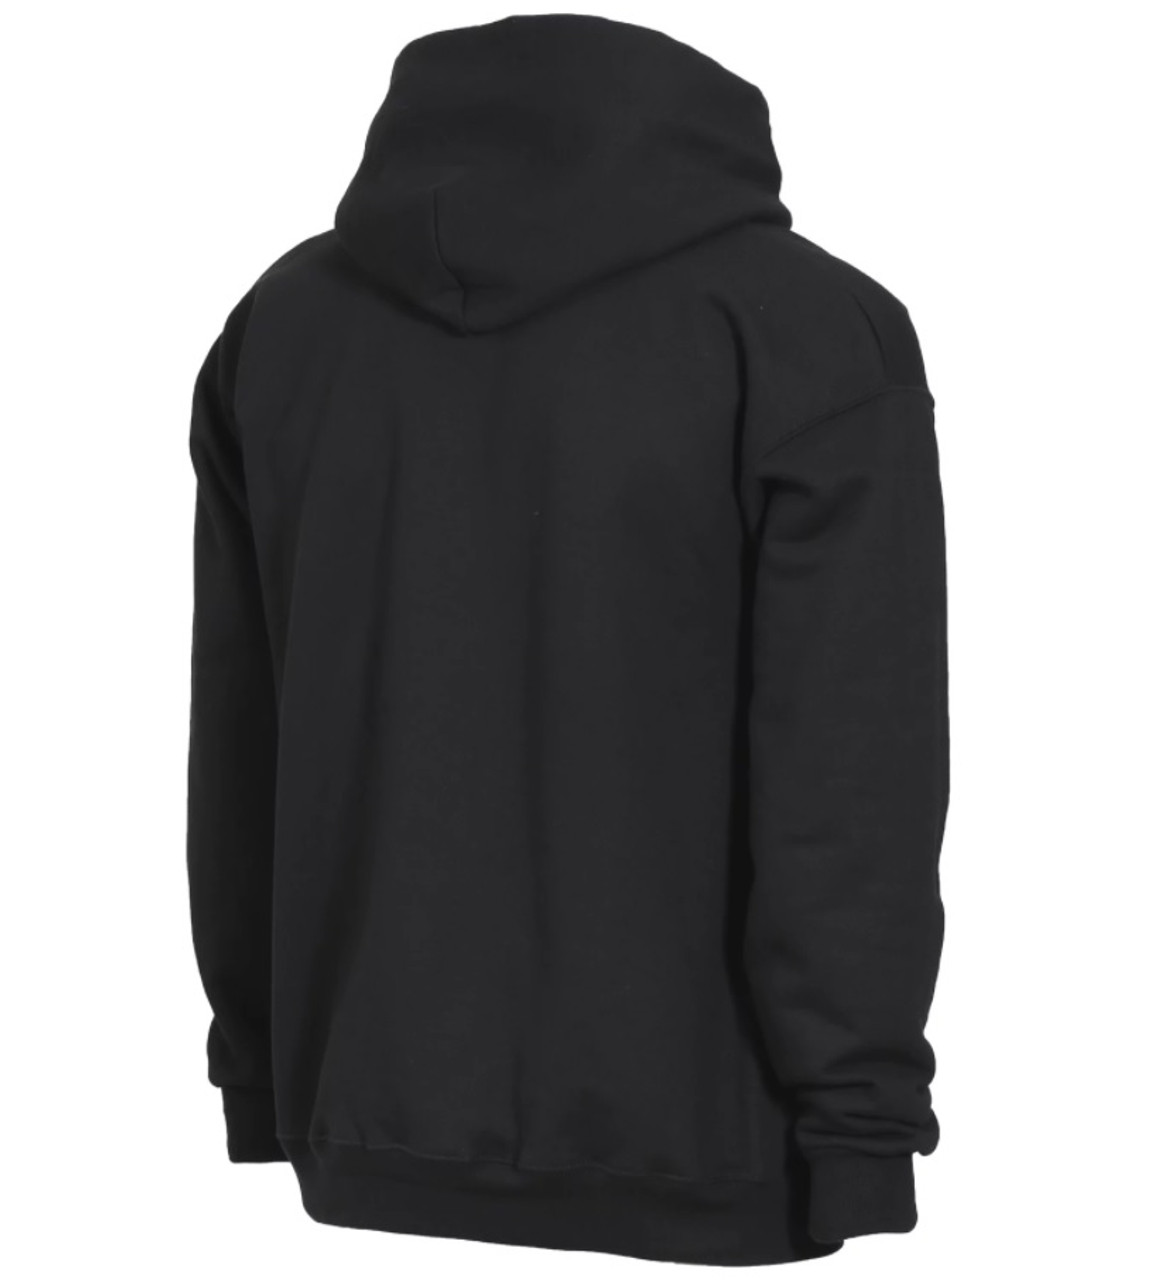 824681836584 Thrasher Richter Hoodie Black Orange